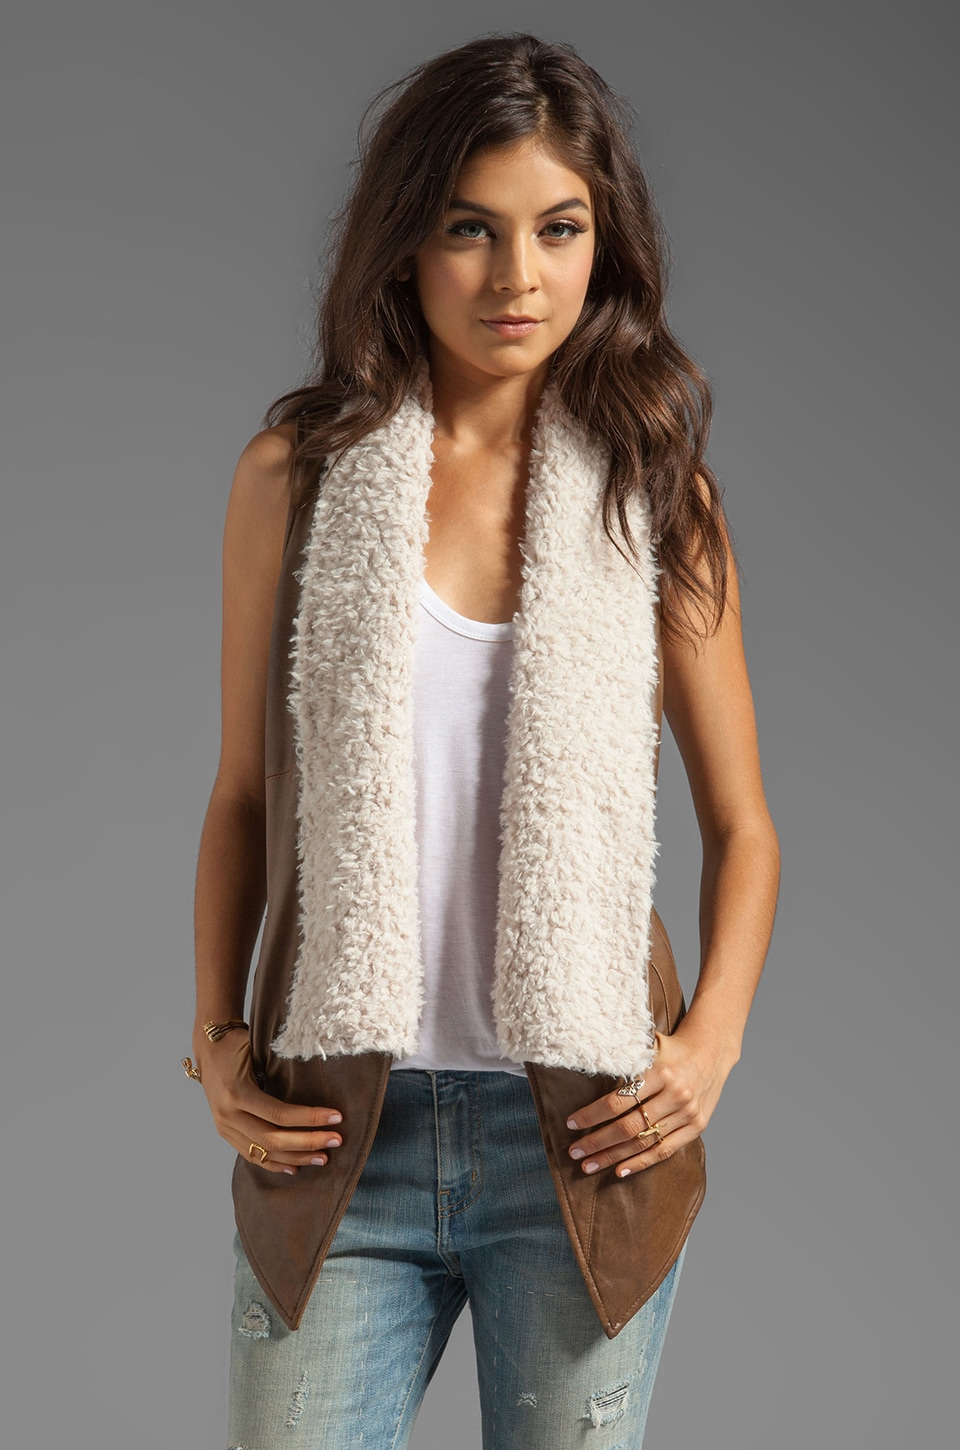 BB Dakota Elaine 2 Tone PU Leather Vest with Faux Fur in Brown